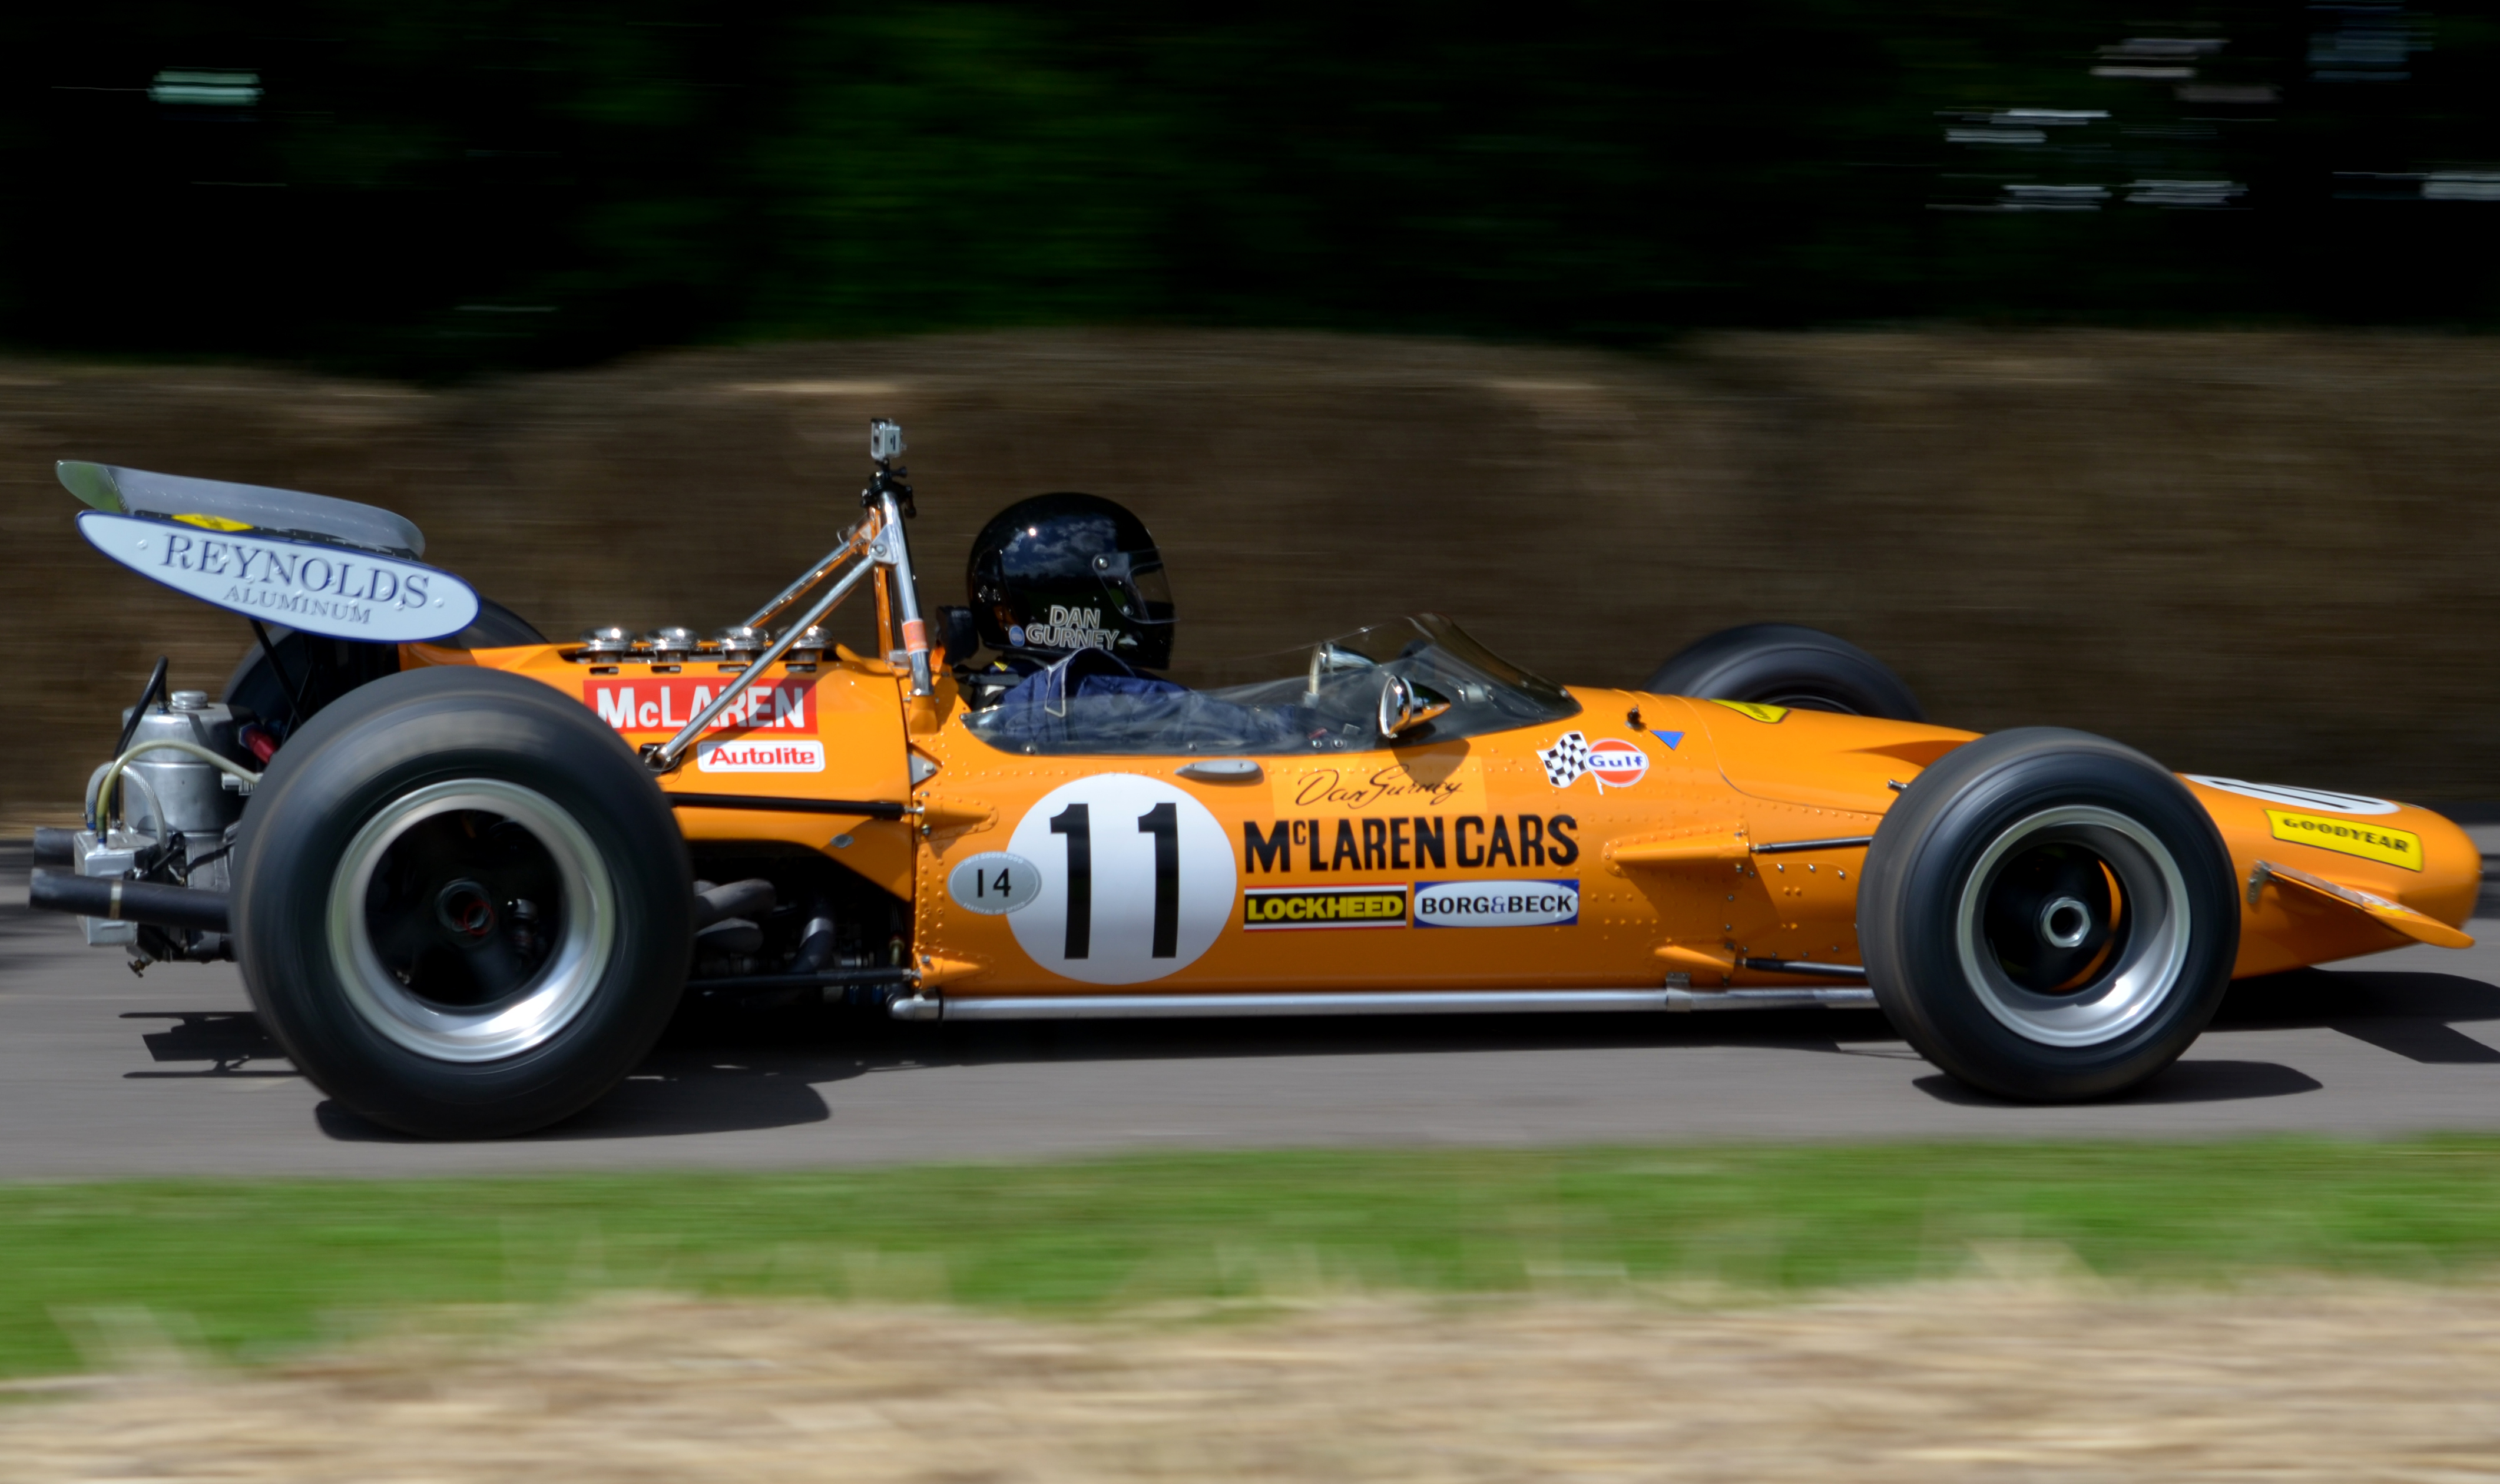 File Mclaren M14a At Goodwood 2012 1 Jpg Wikimedia Commons